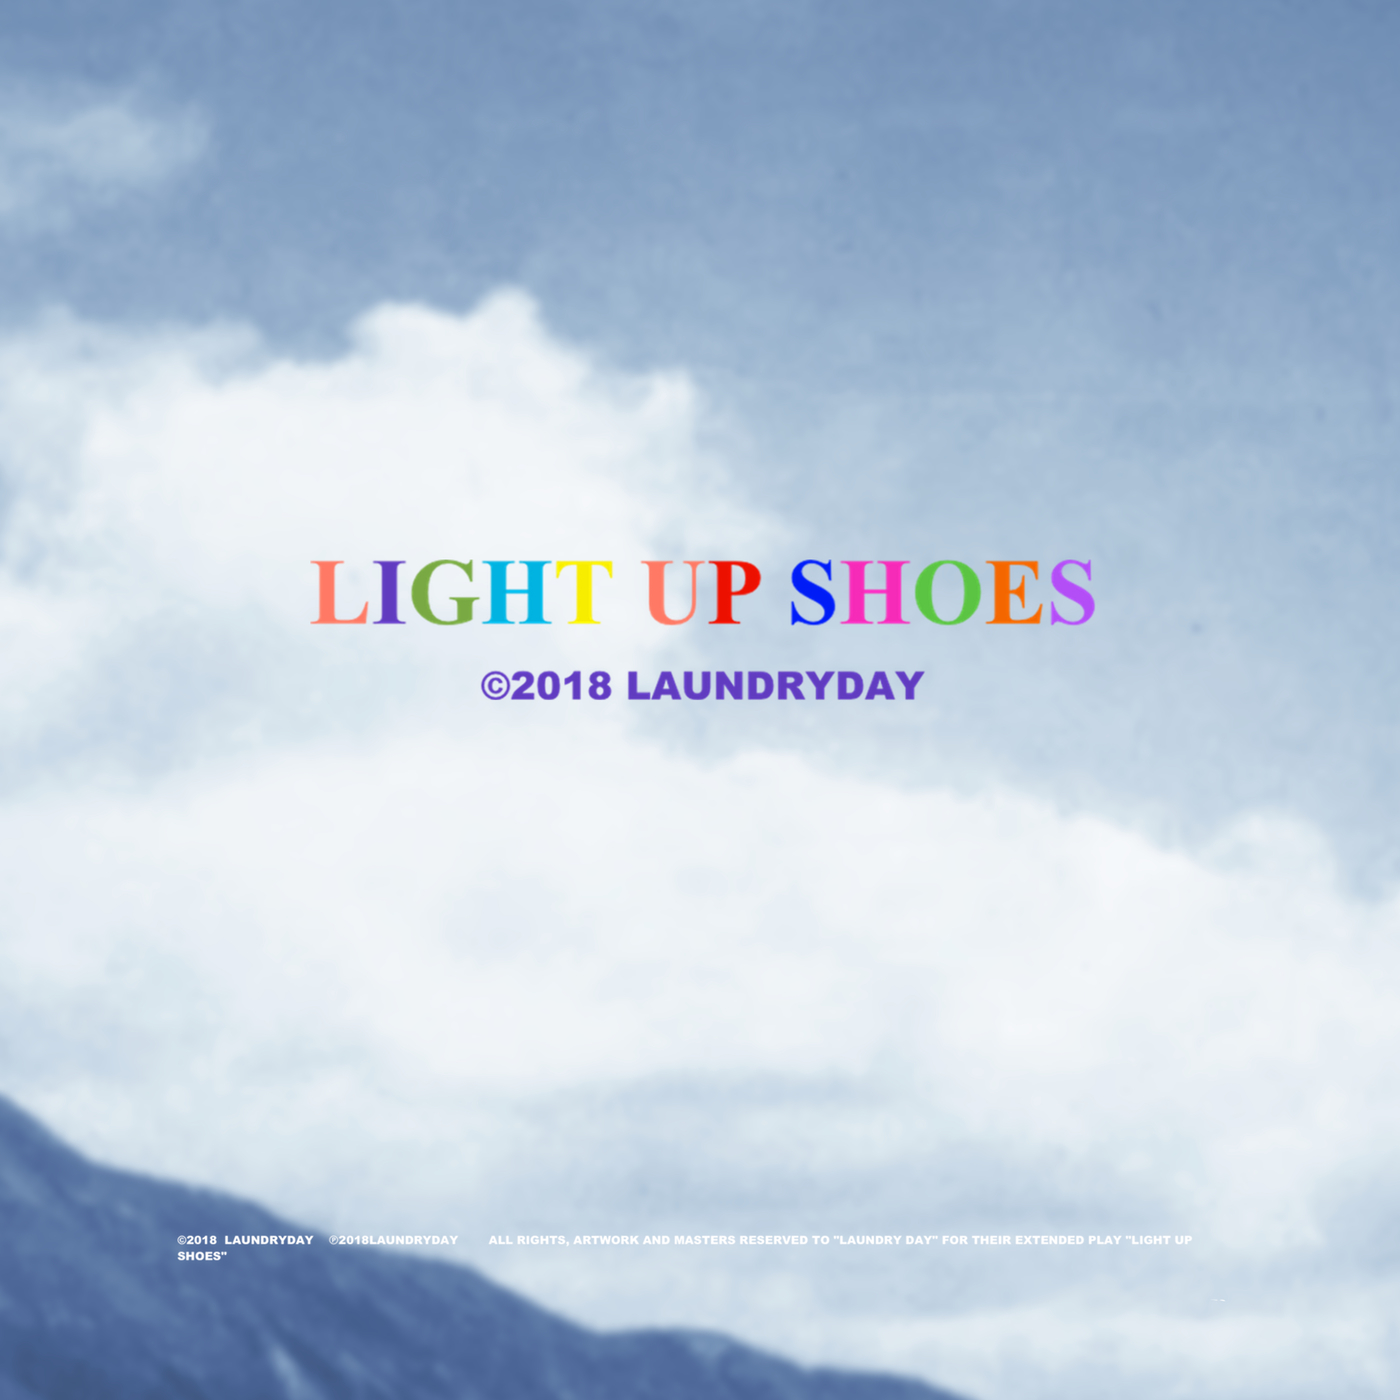 Light Up Shoes - LAUNDRY DAY